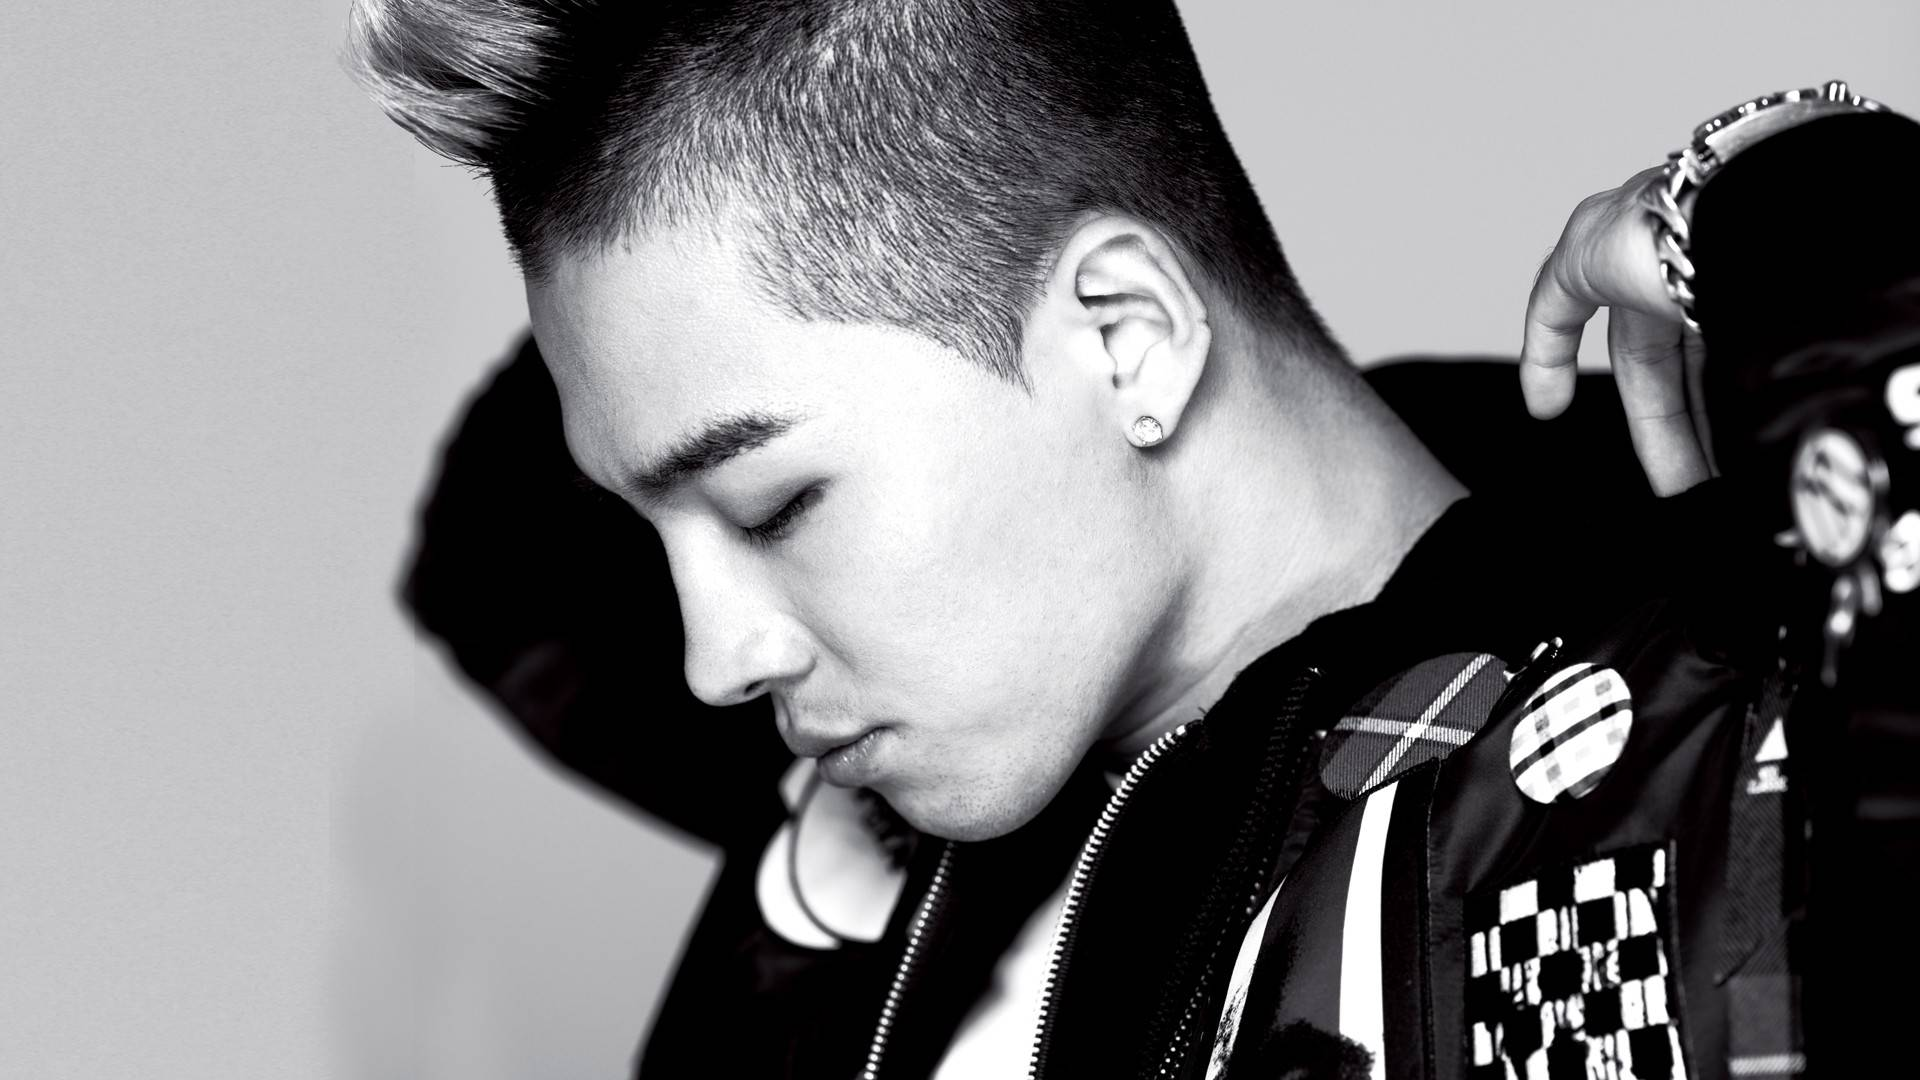 G-Dragon BigBang hip hop k-pop korean kpop pop (94) wallpaper ...